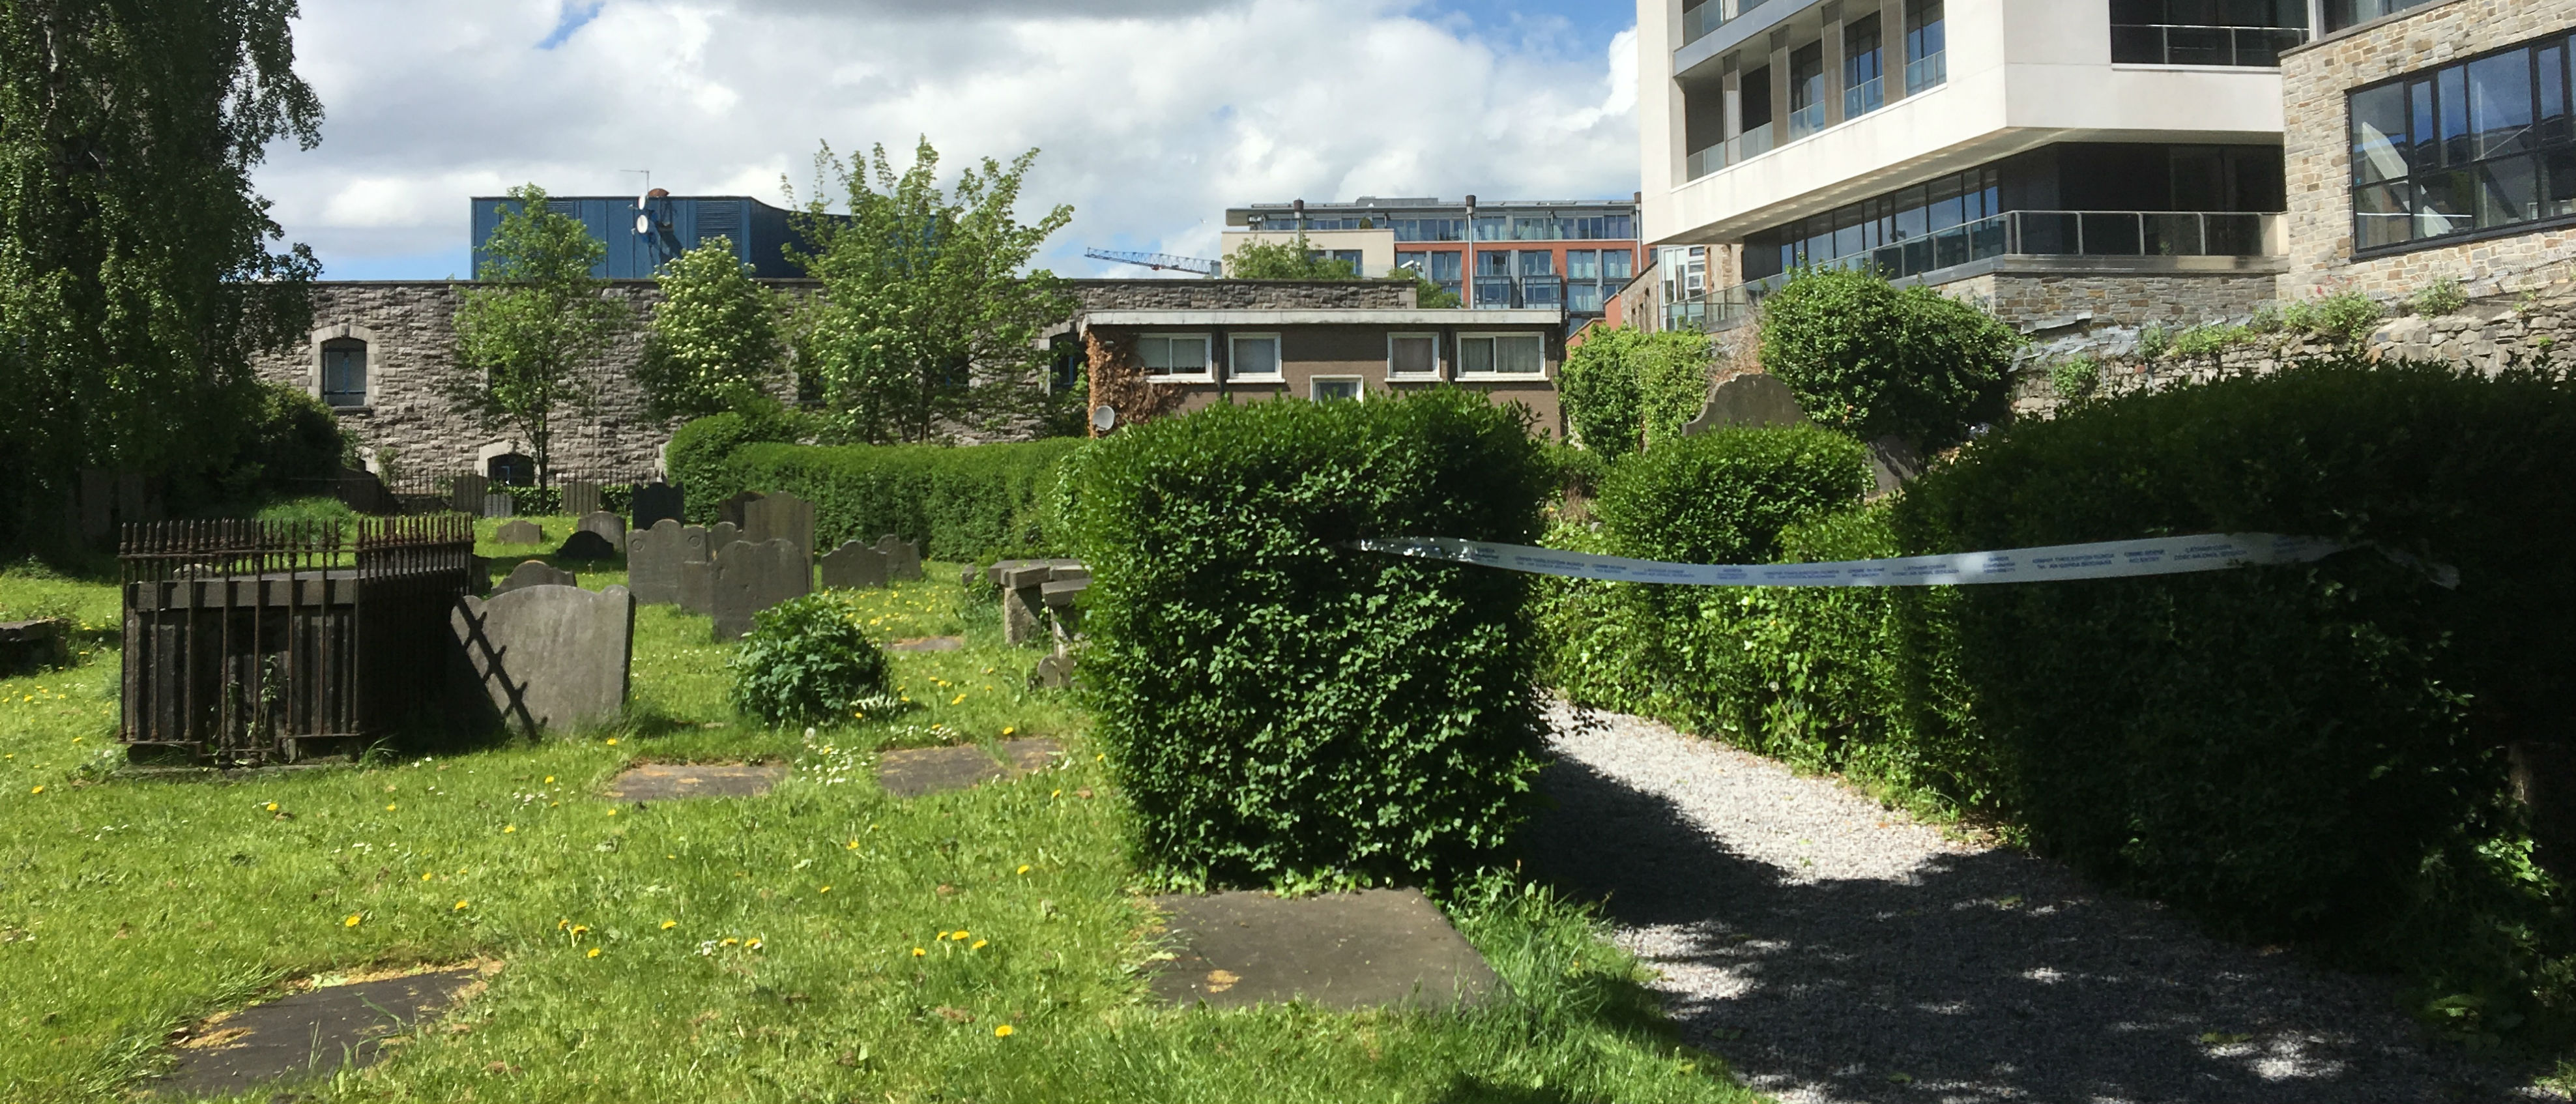 St Michan's Graveyard Closed Temporarily After Woman's Body Found